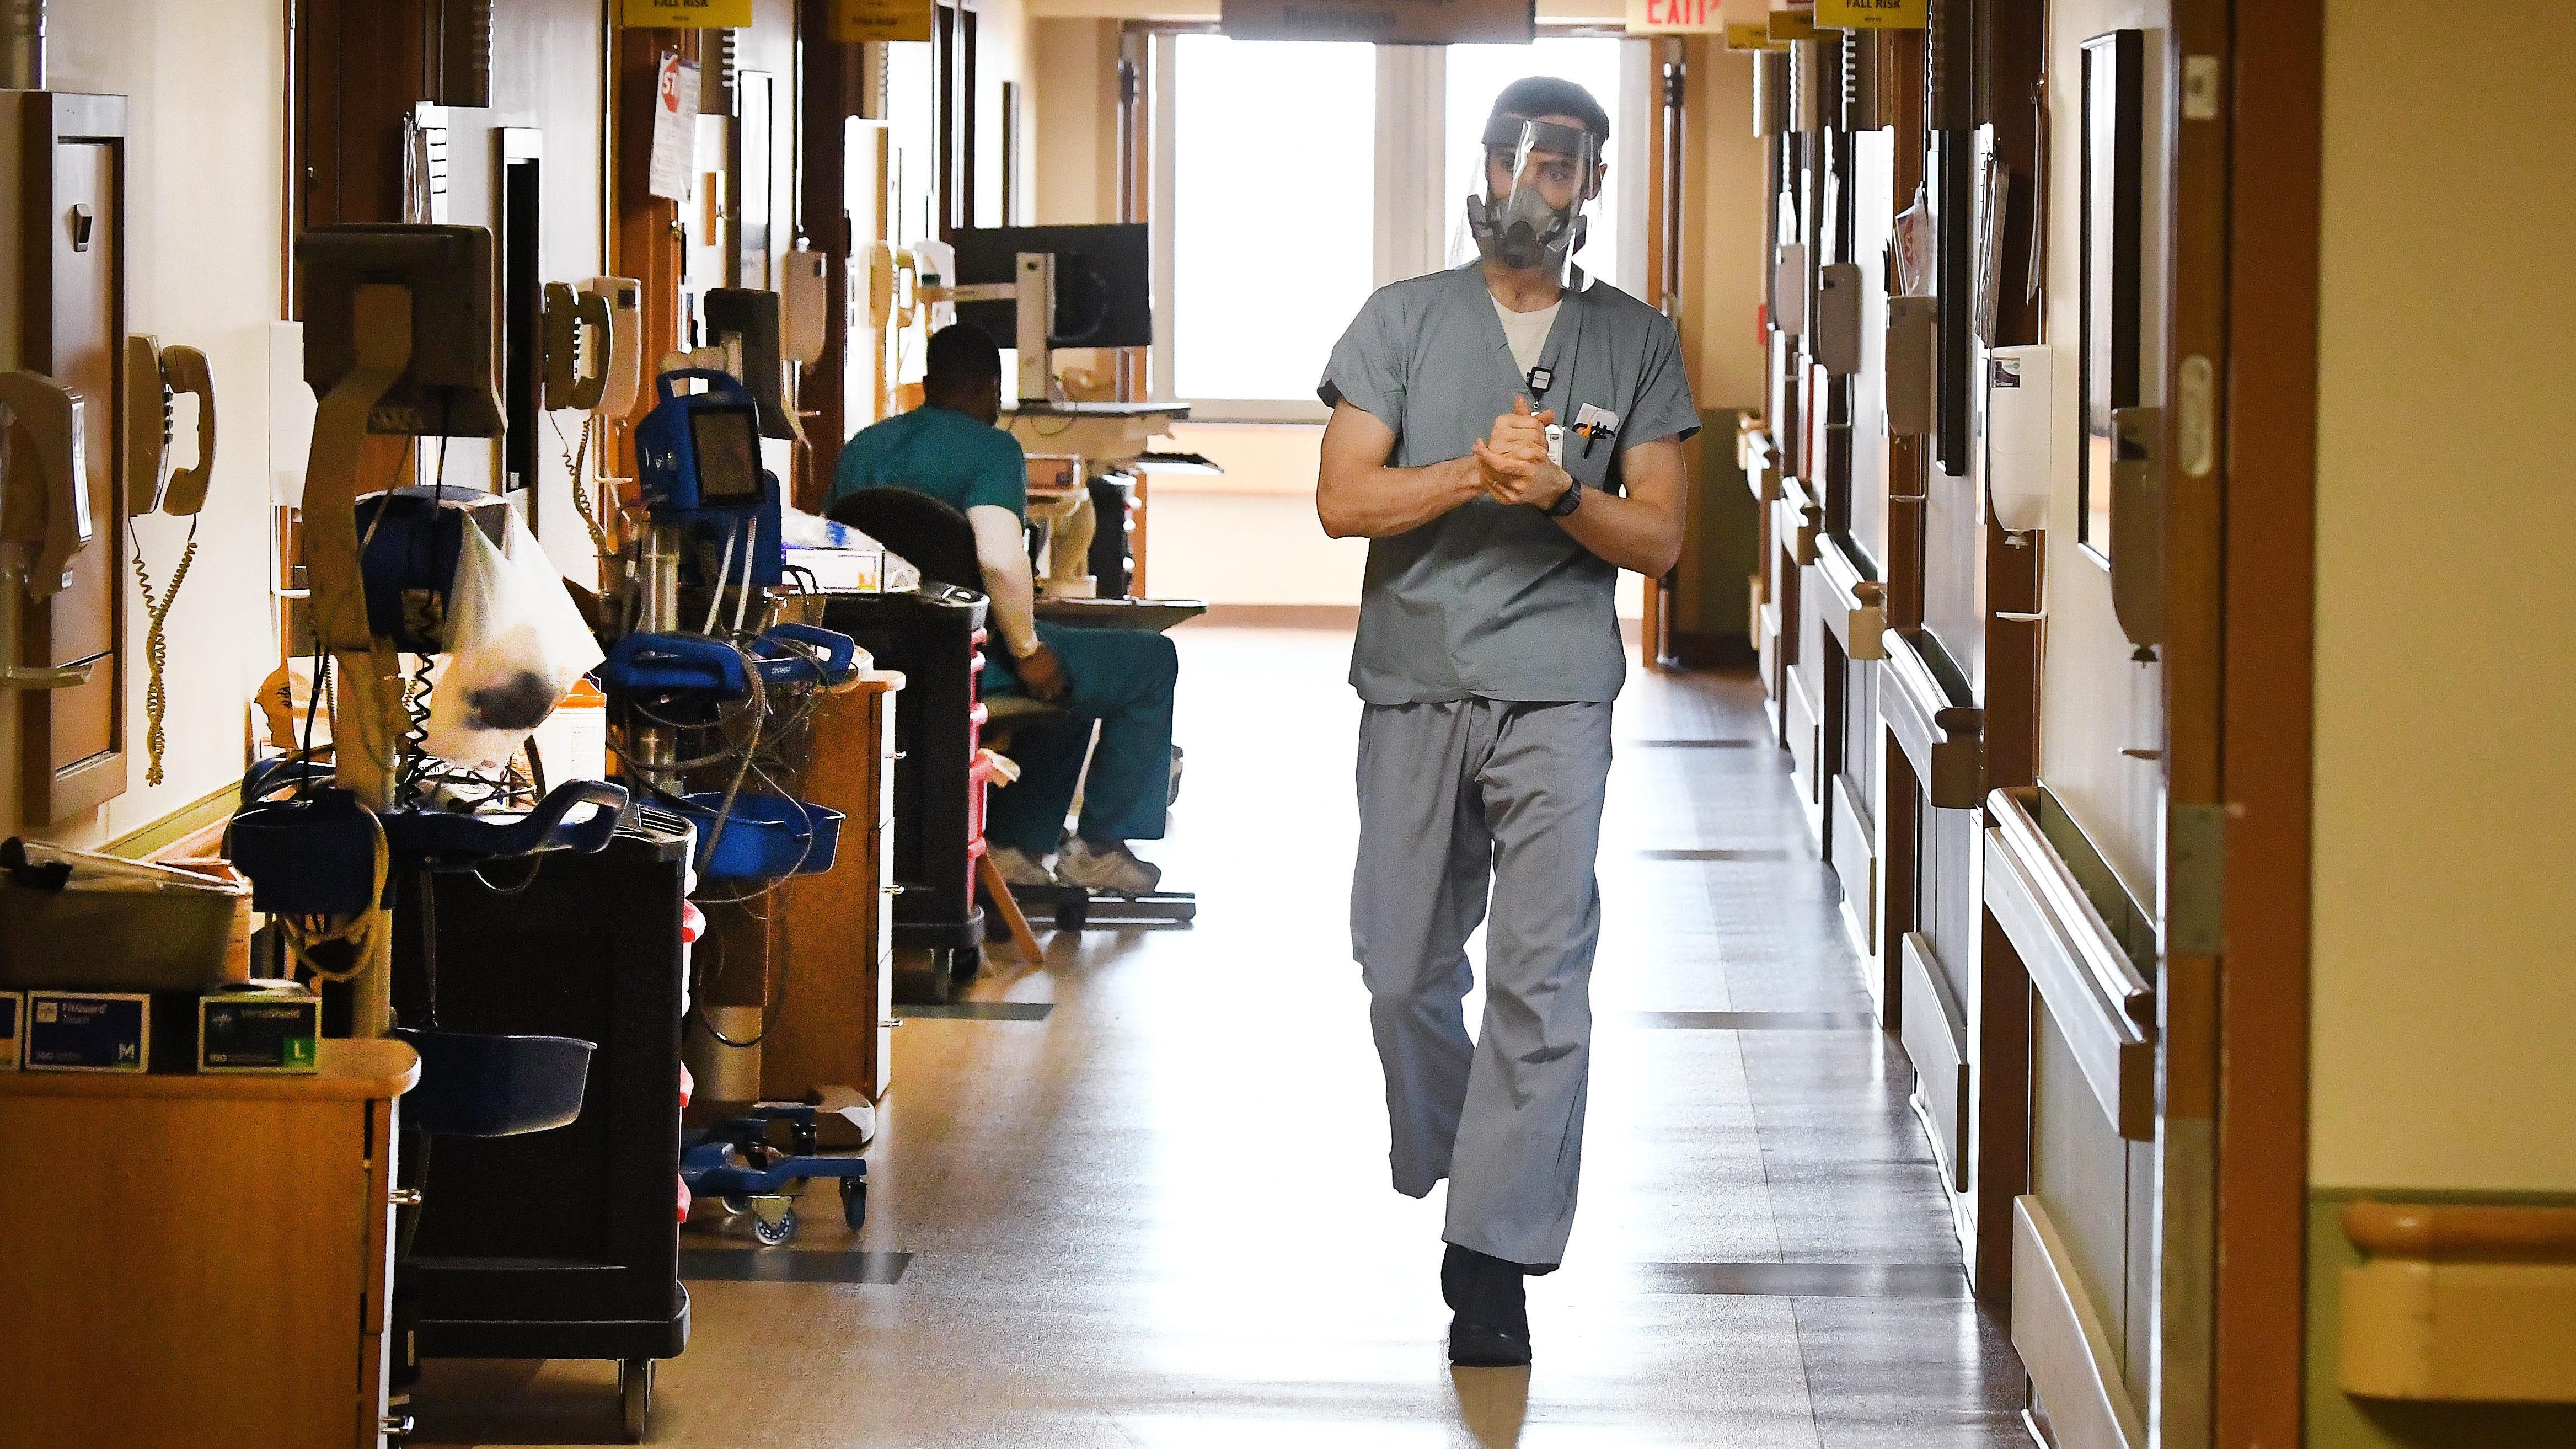 Registered nurse Spencer Carlson works in the Beaumont Dearborn Hospital COVID-19 unit in March 2021. Some older nurses decided to retire after the difficulties generated by the coronavirus and caring for patients, Michigan hospital officials said.